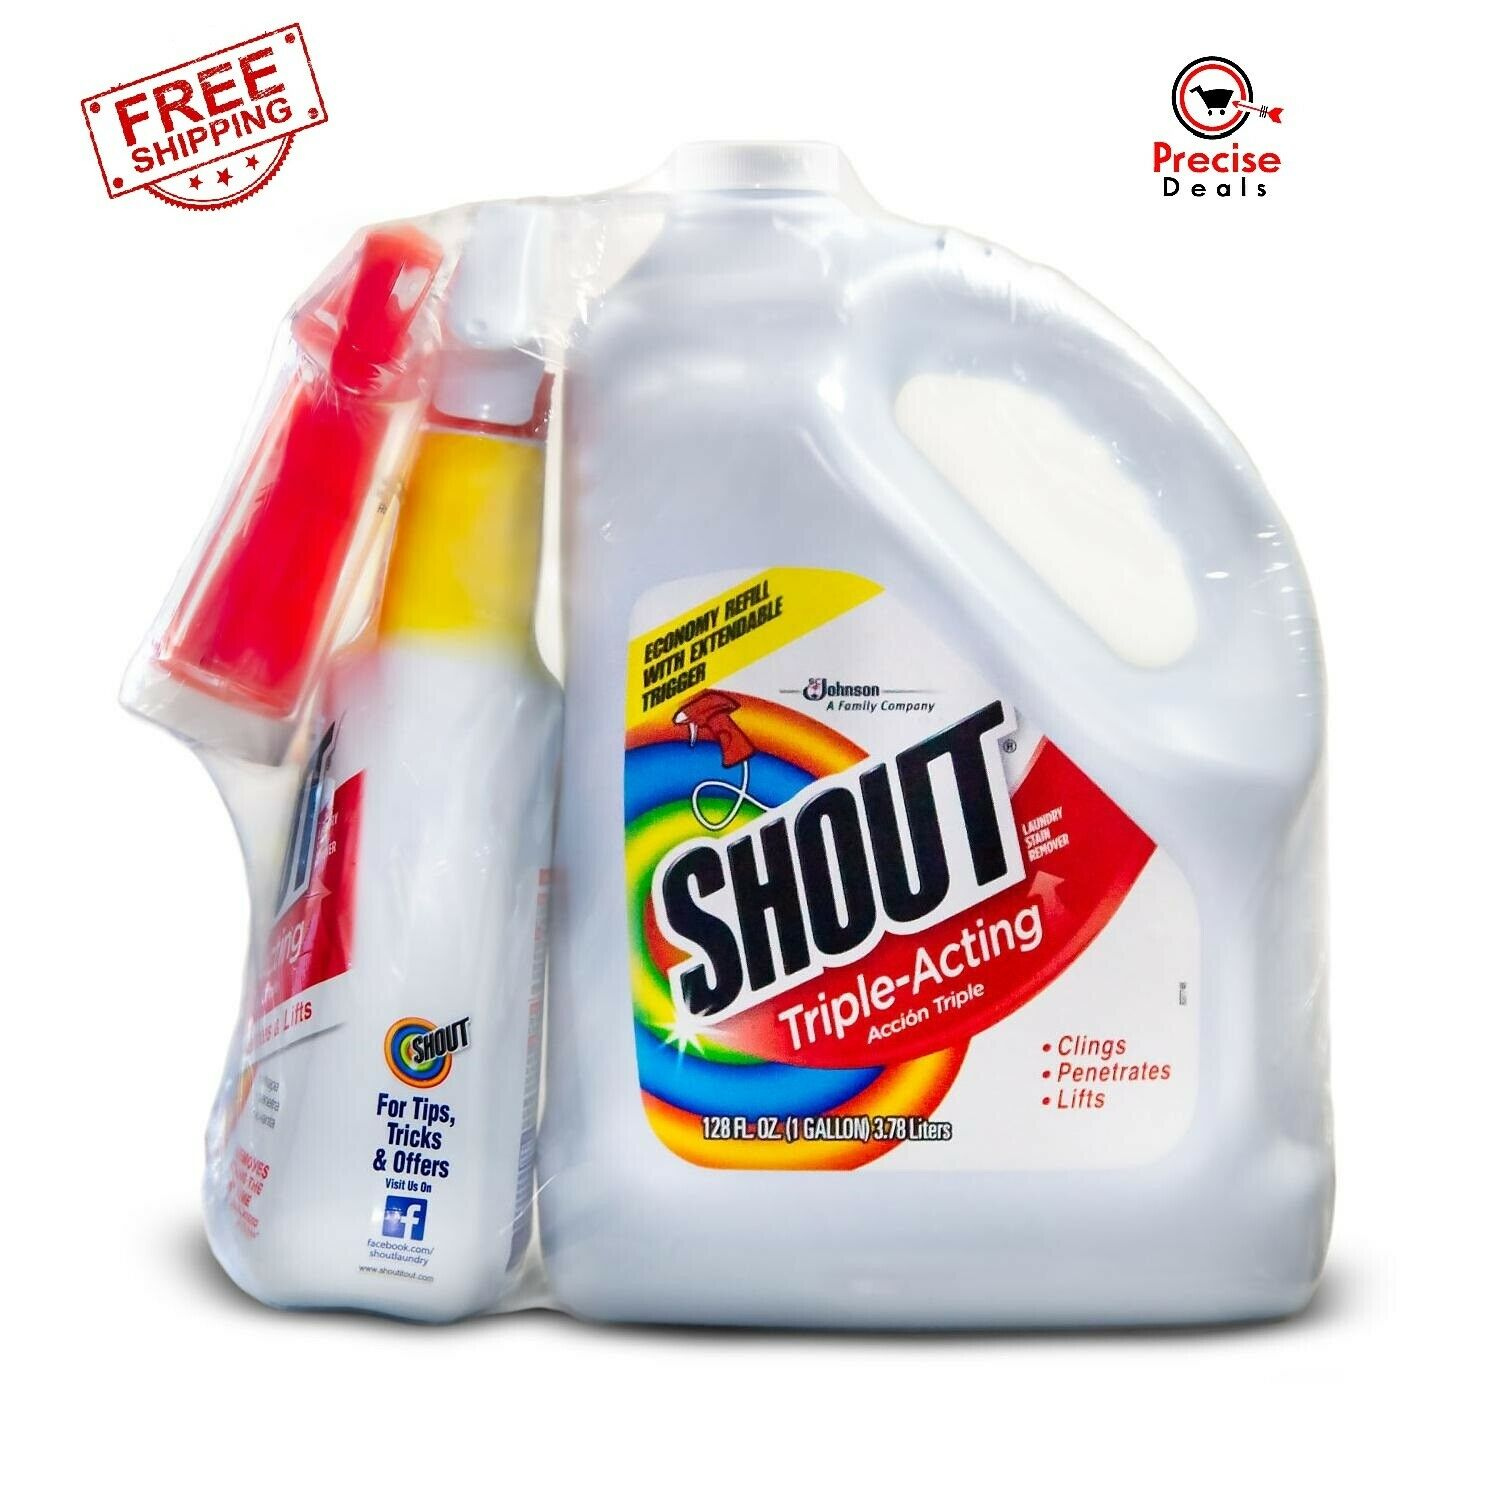 Shout Triple-Acting Liquid 1 Gallon Refill + 32 oz. Shout Trigger **FREE SHIP**